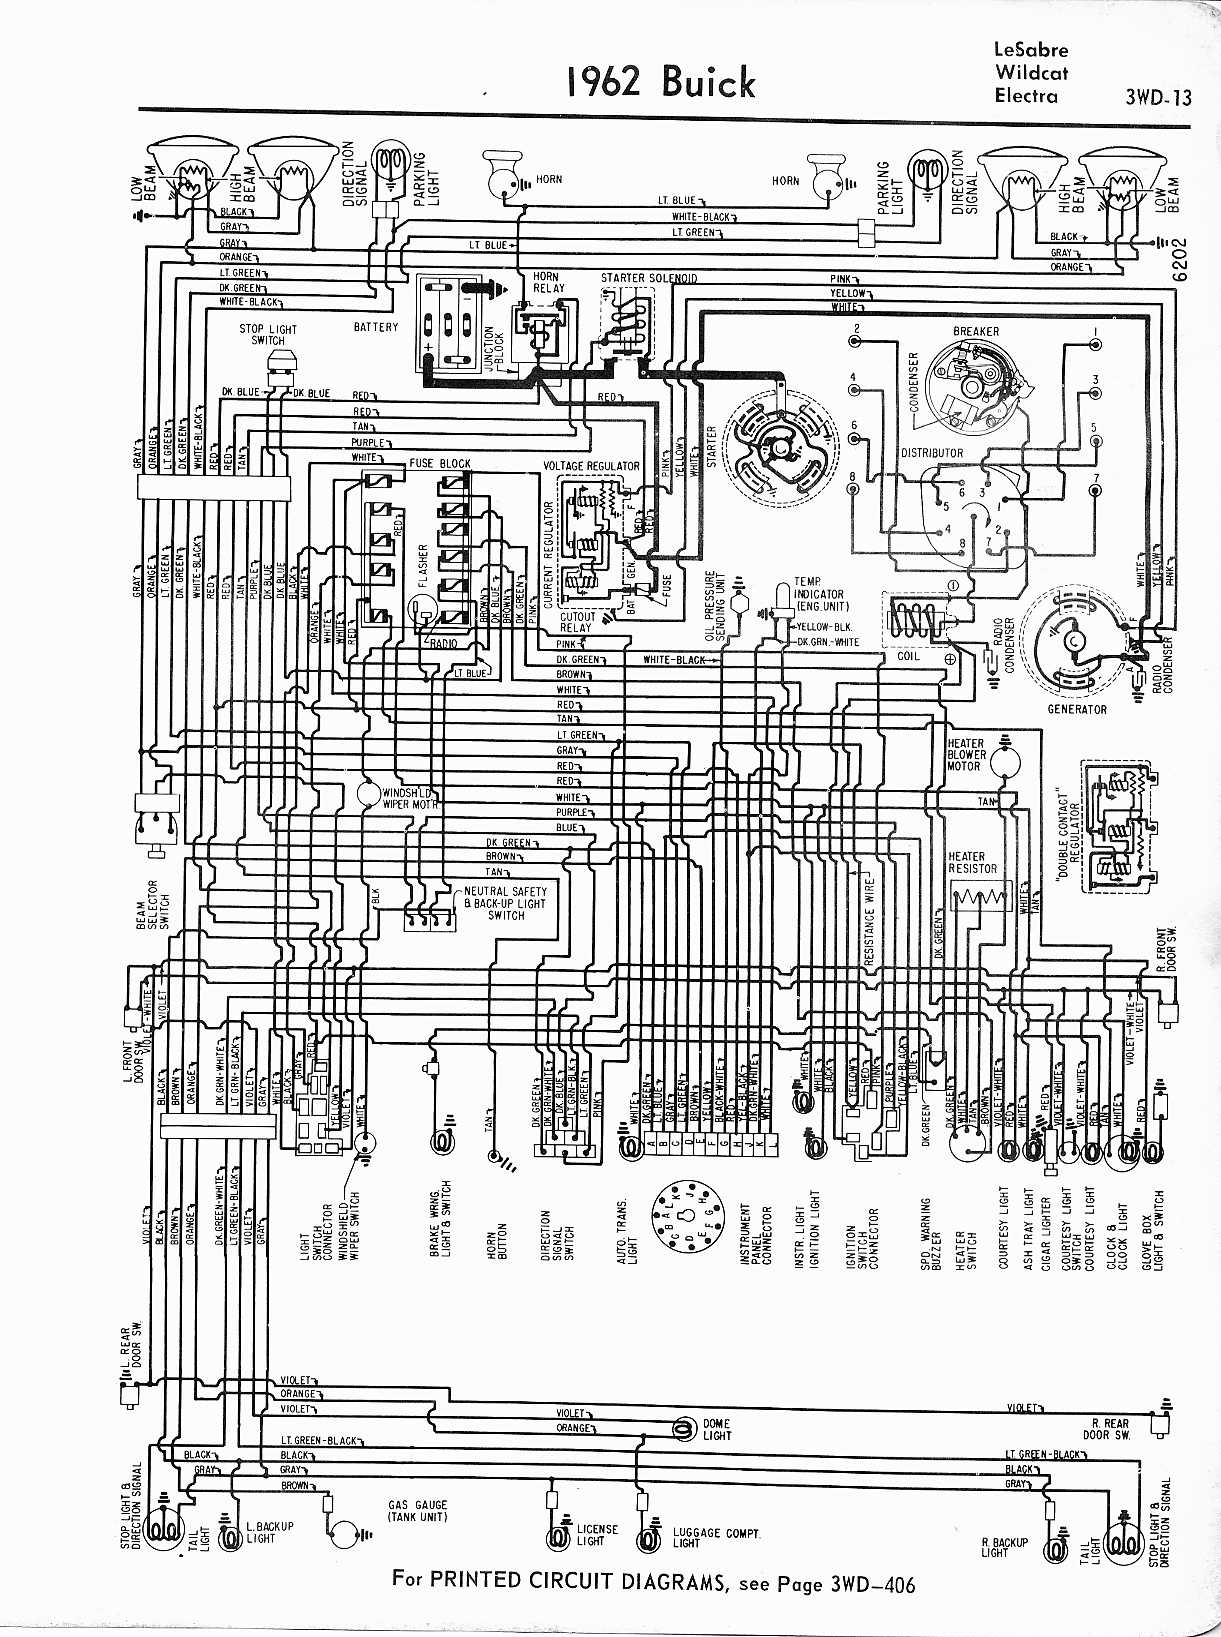 68 cadillac wiring diagram free picture schematic enthusiast rh bwpartnersautos com